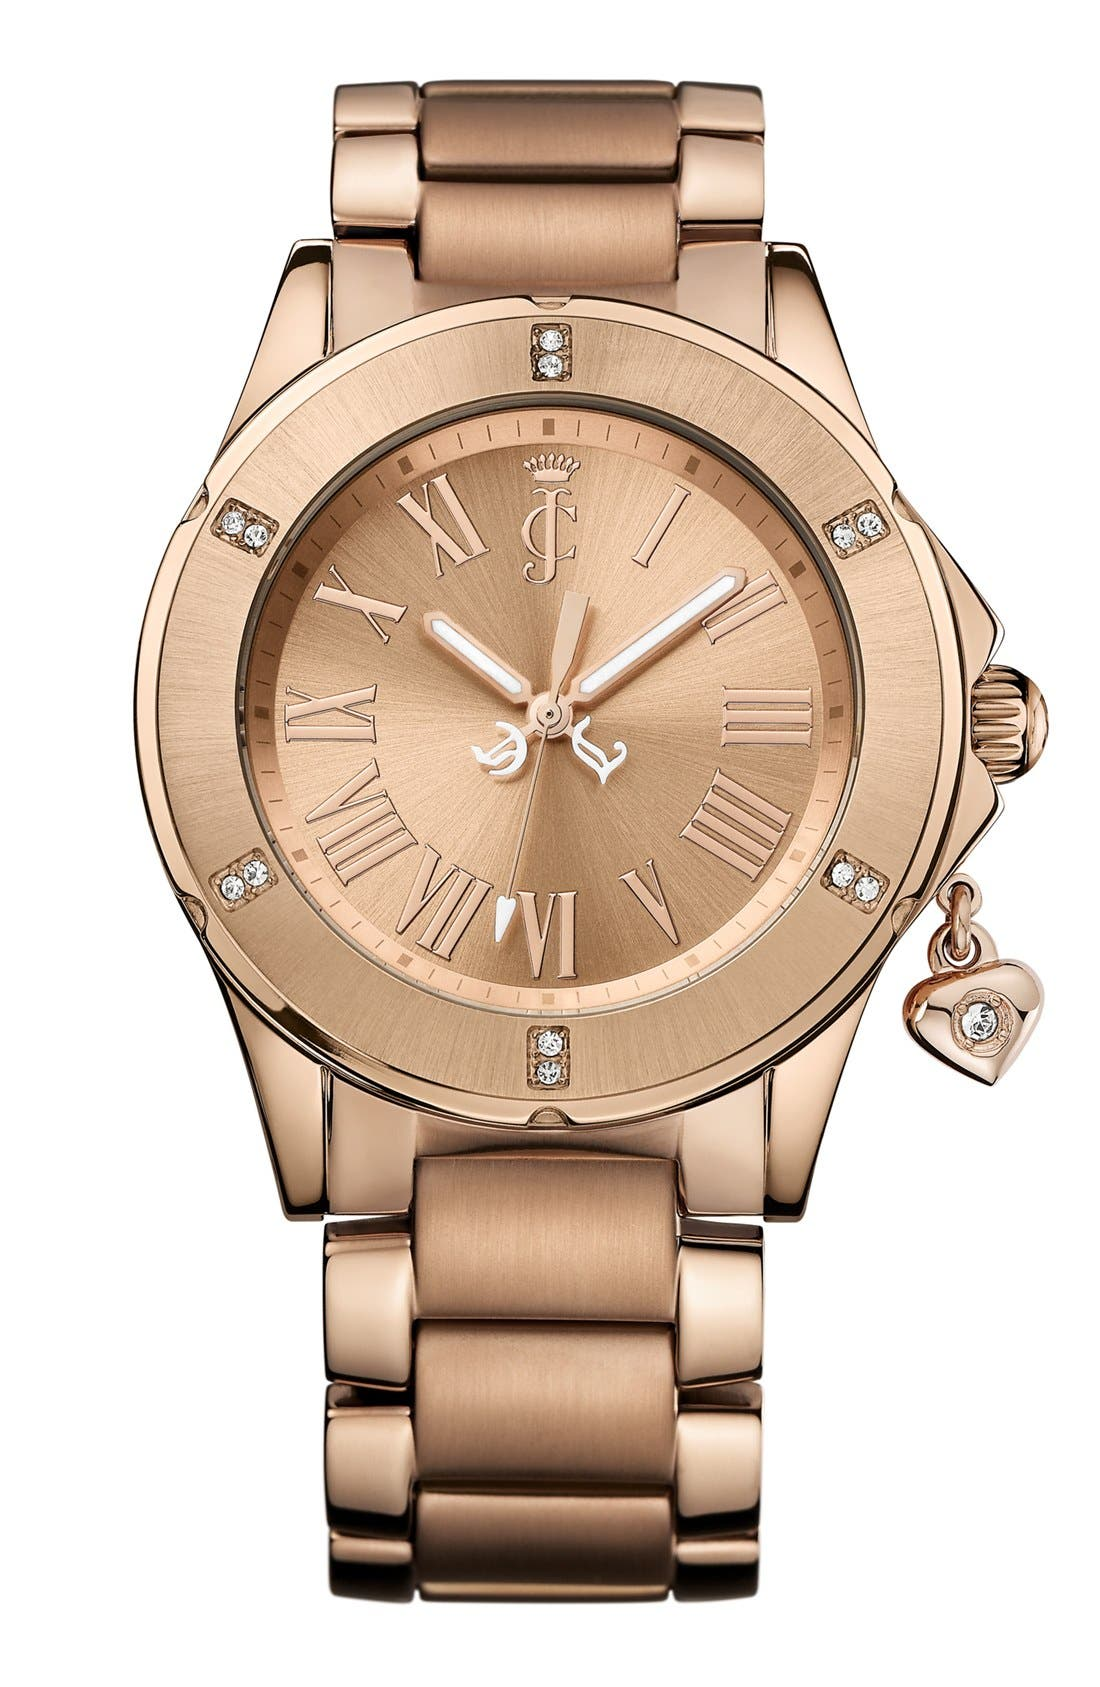 Main Image - Juicy Couture 'Rich Girl' Round Dial Bracelet Watch